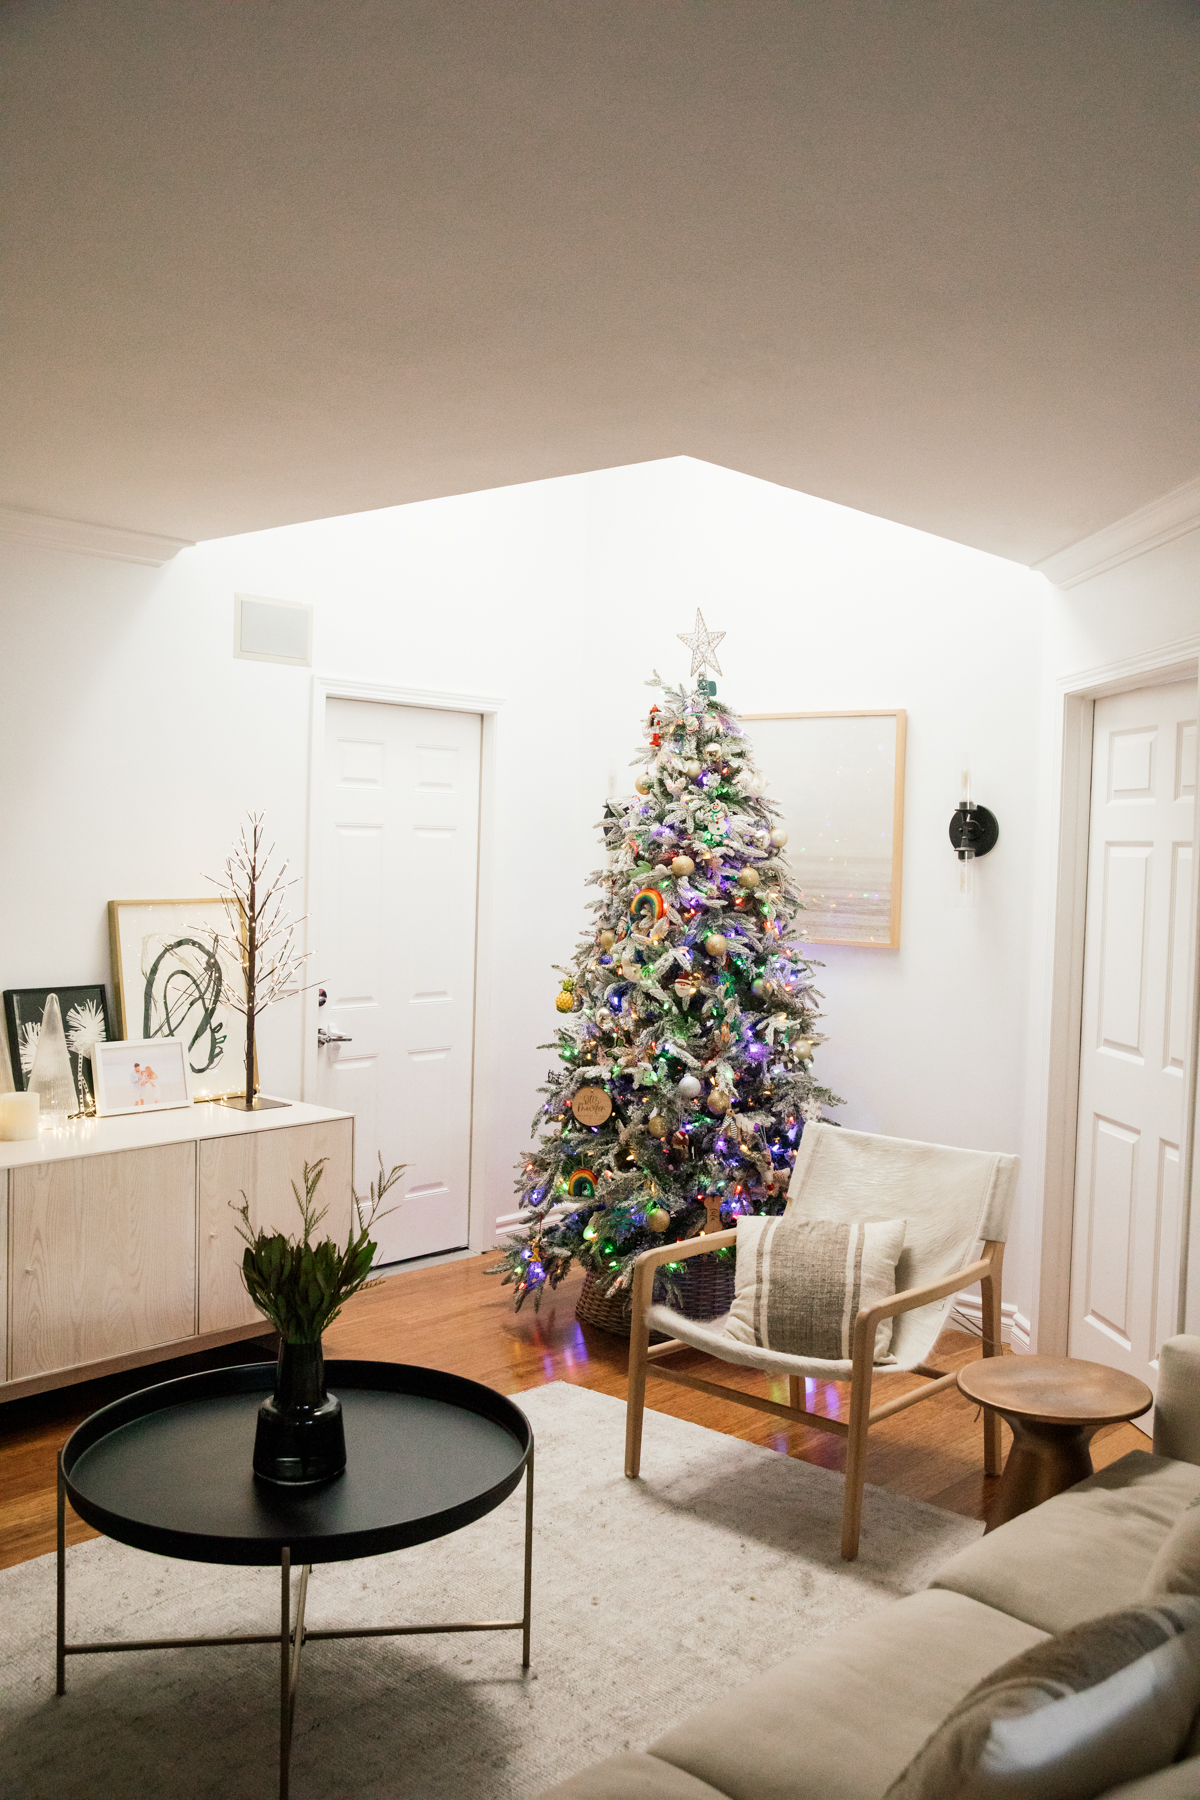 Indoor Holiday decor of lit Christmas Tree